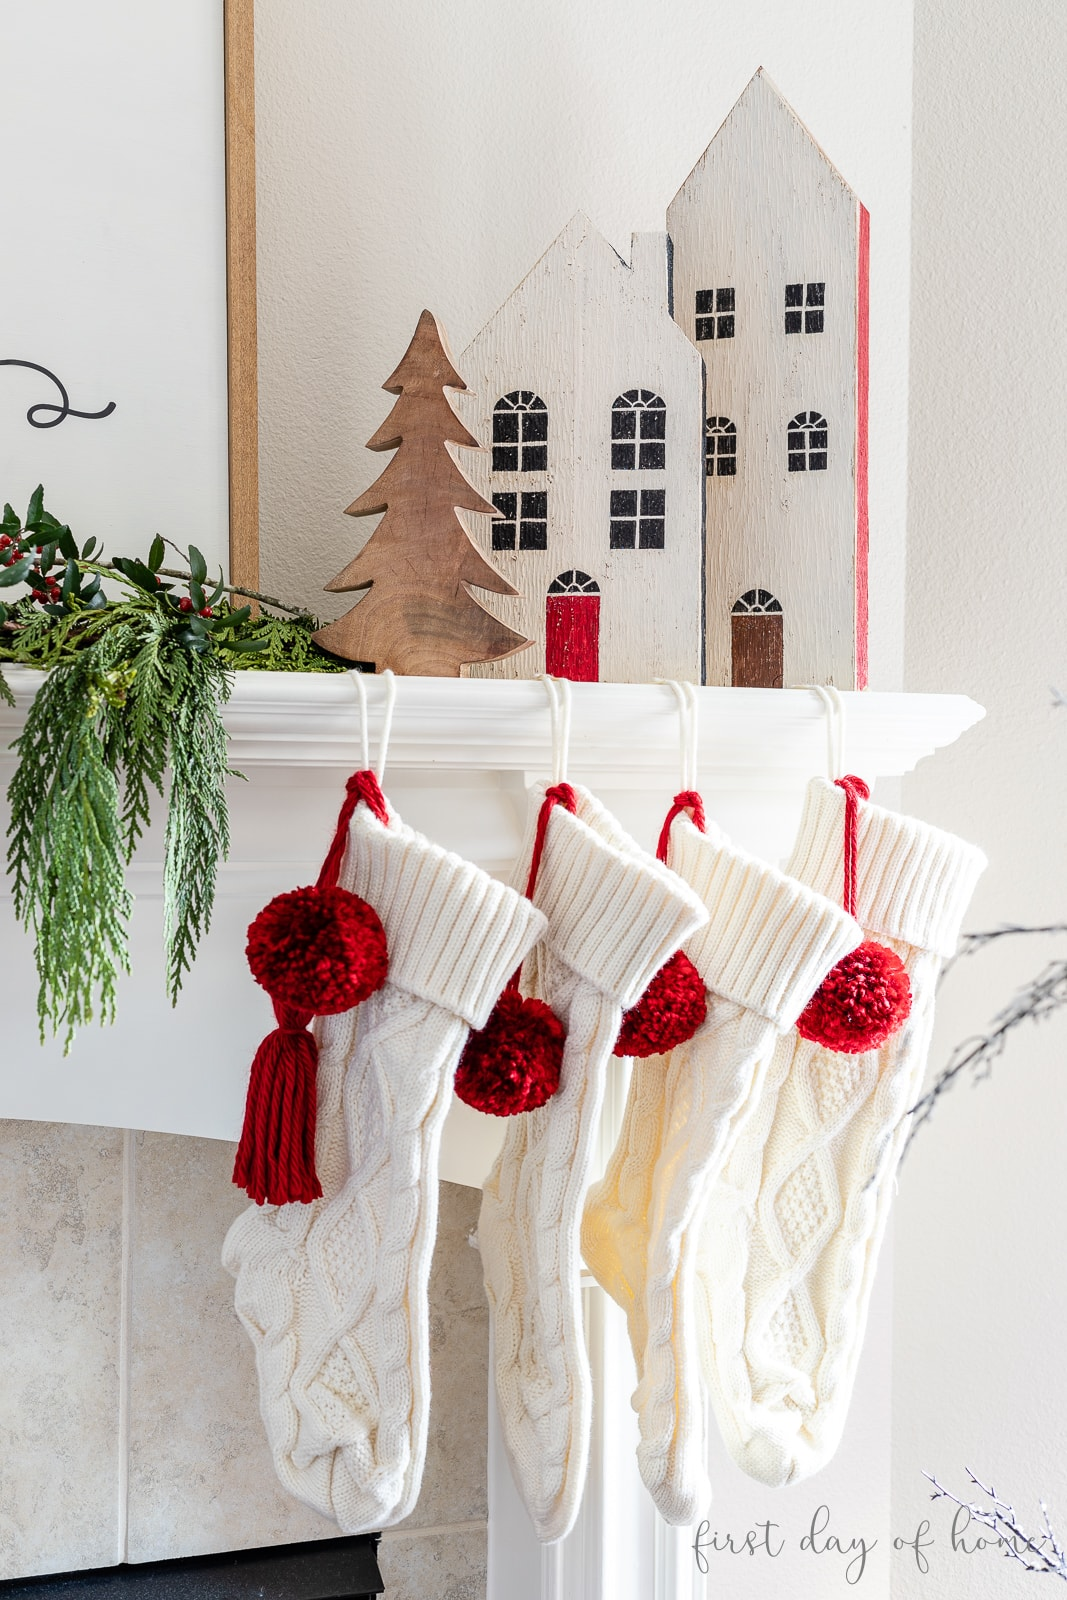 Christmas mantel with knit stockings and two DIY wooden houses with a wooden Christmas tree